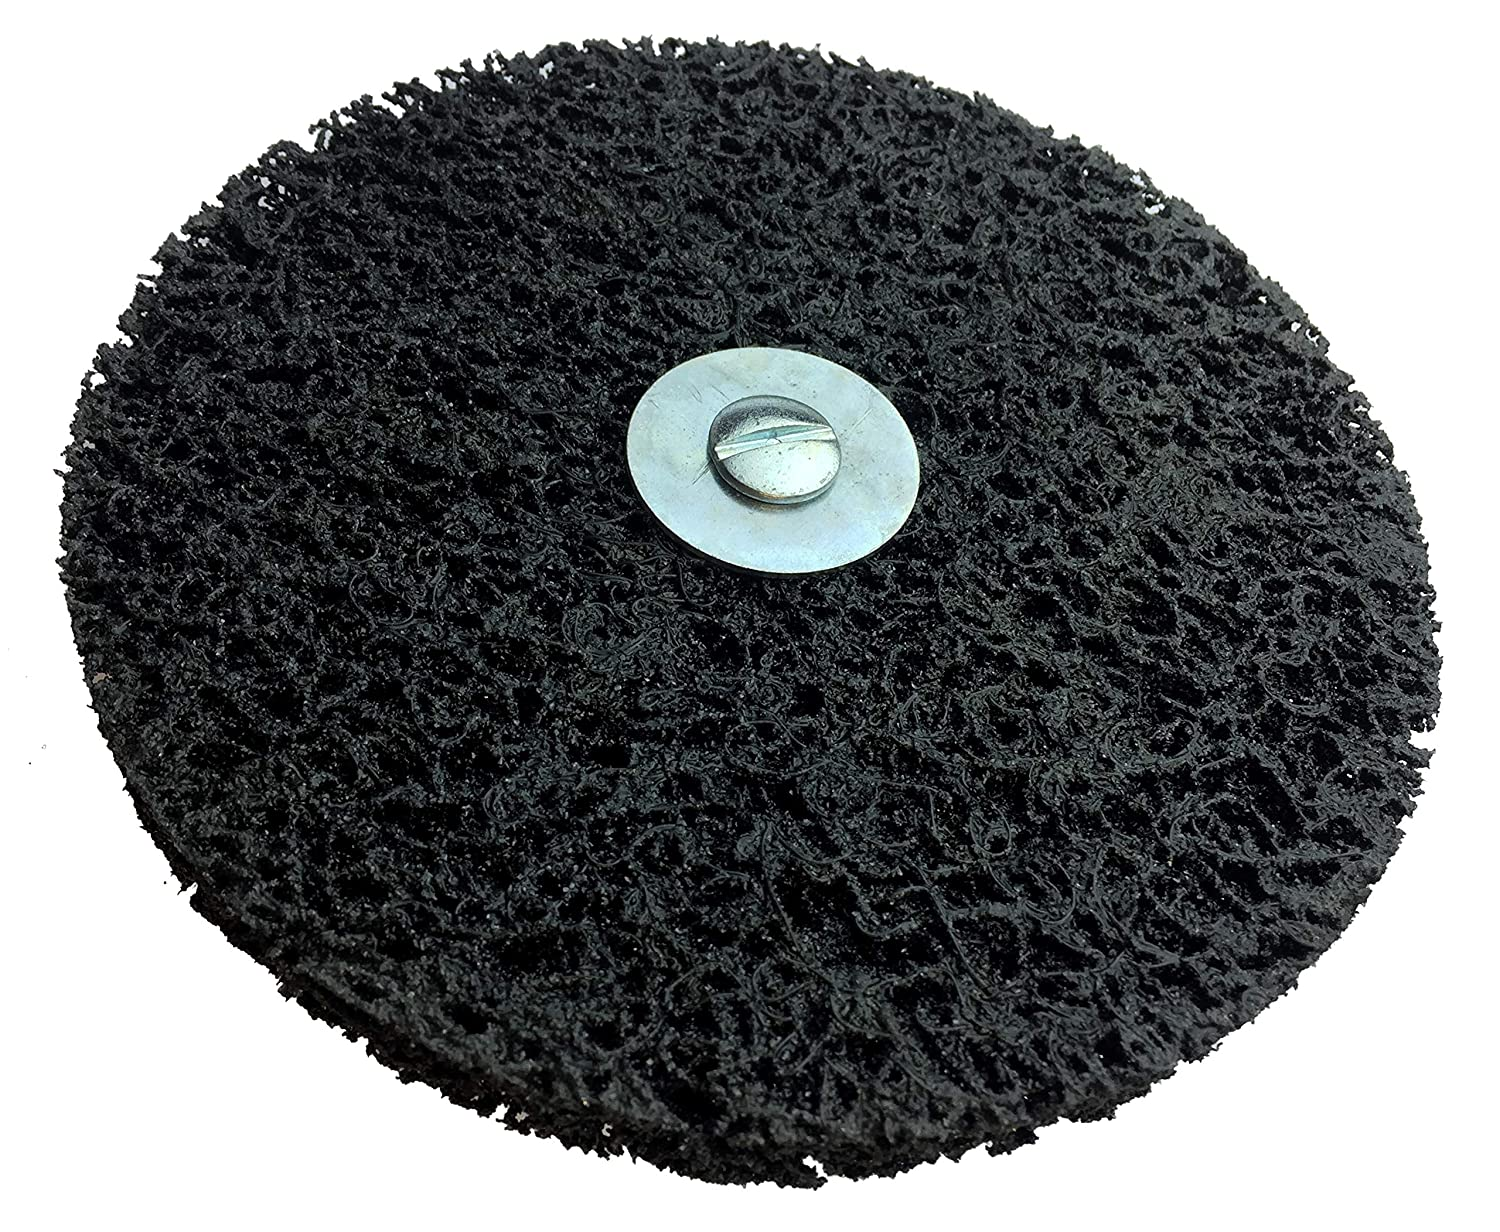 Falon Tech Cleaning Disc Diameter 150 x 10 x 13 mm Coarse Cleaning Disc Including Mandrel Clean Strip Disc